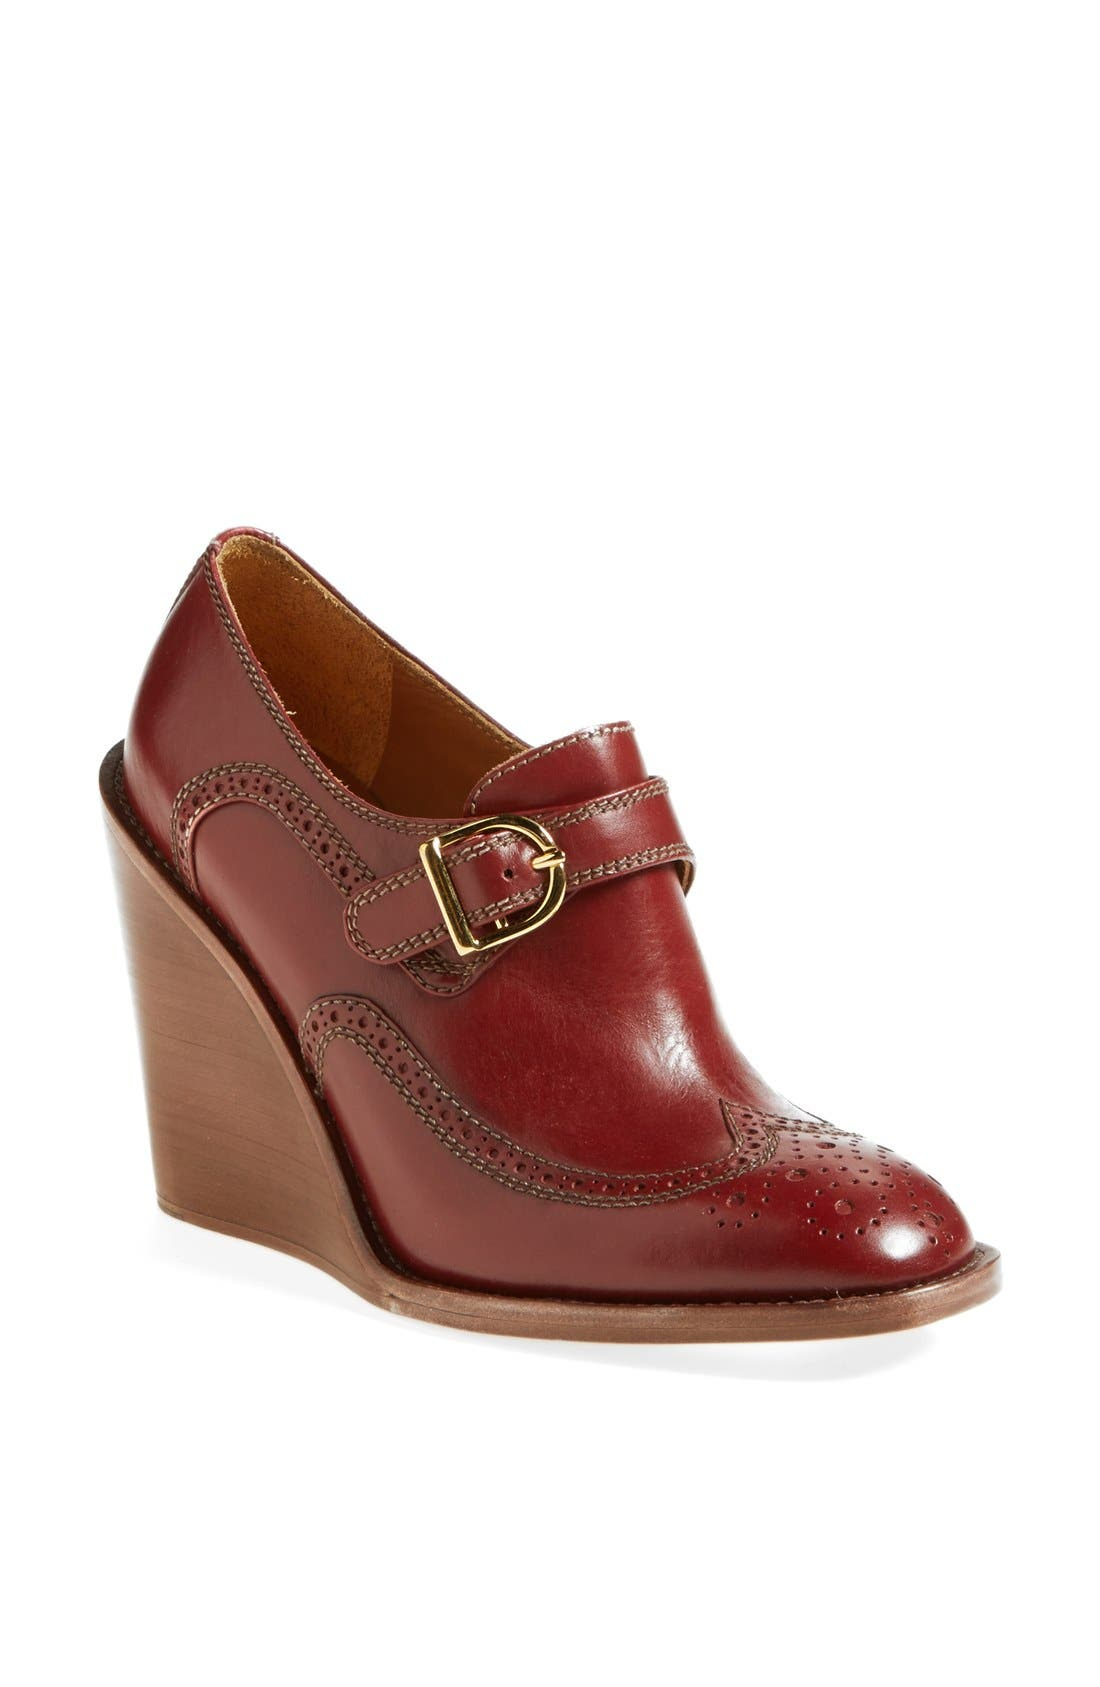 Alternate Image 1 Selected - See by Chloé 'Ricki' Wingtip Wedge Bootie